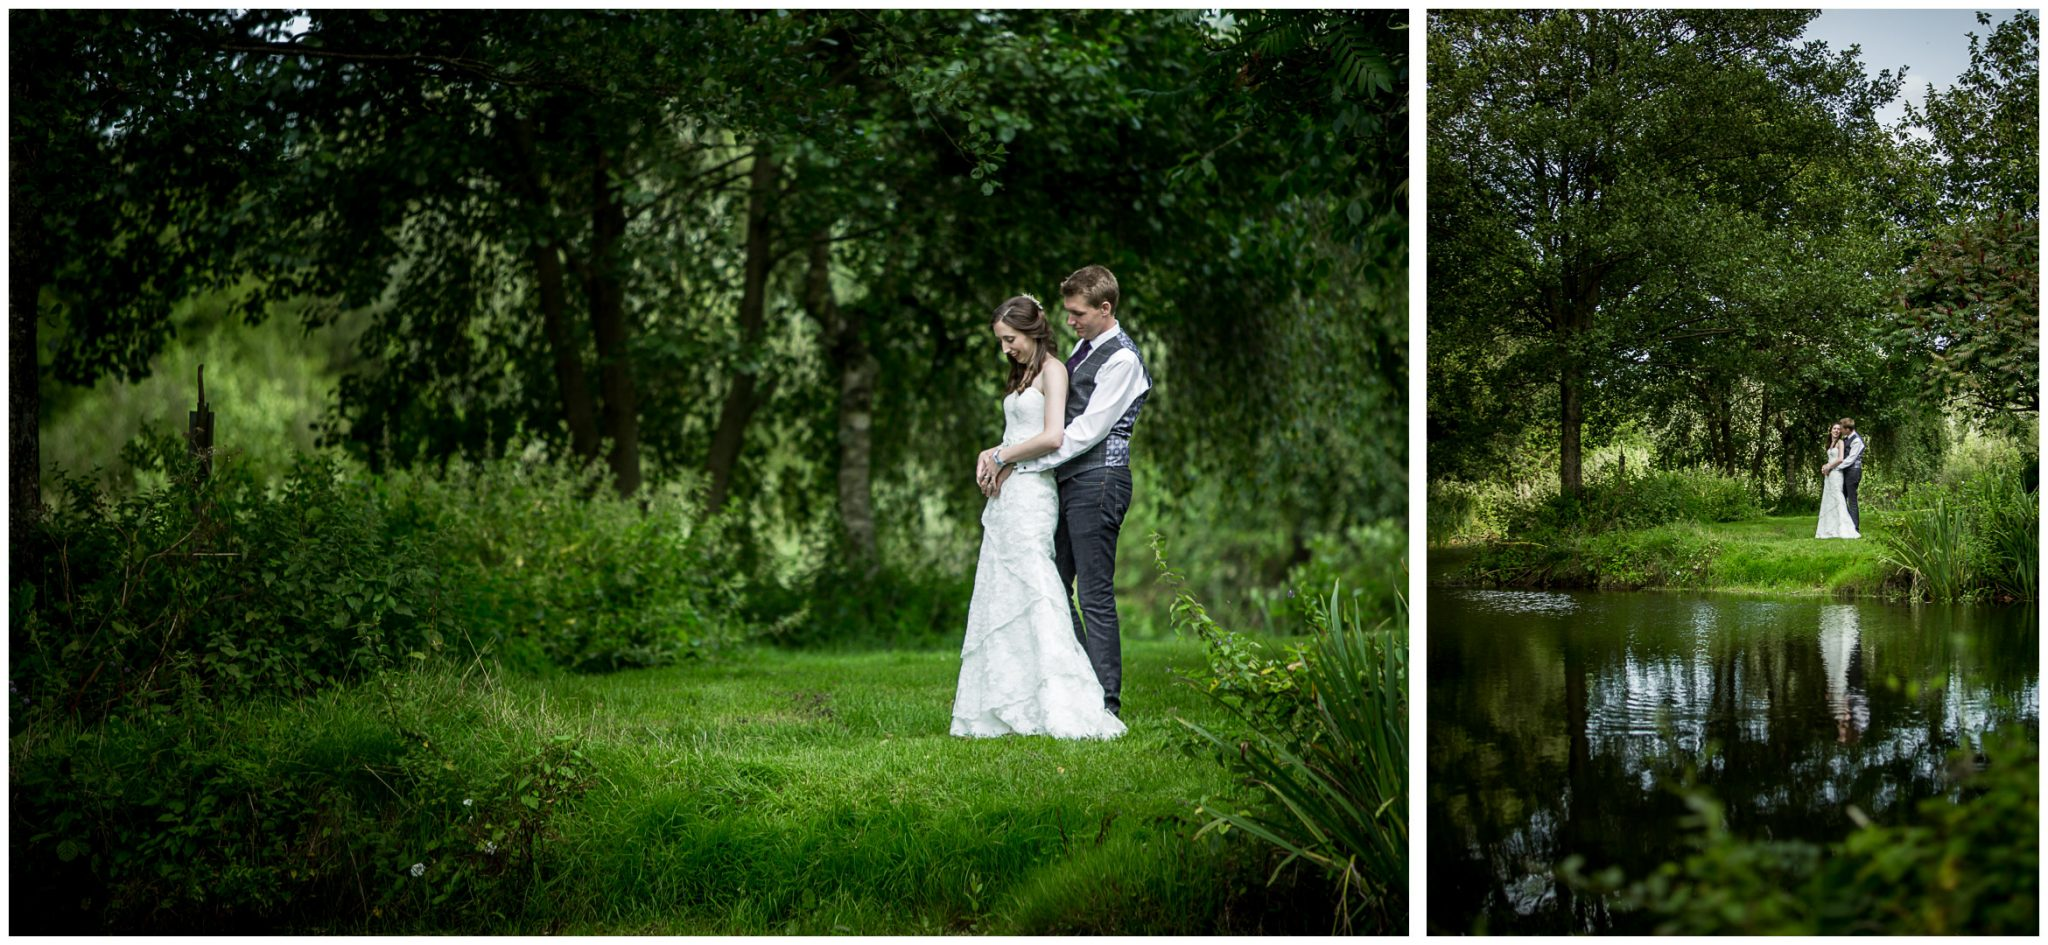 Timsbury Manor Festival Wedding bride and groom portraits in grounds of estate